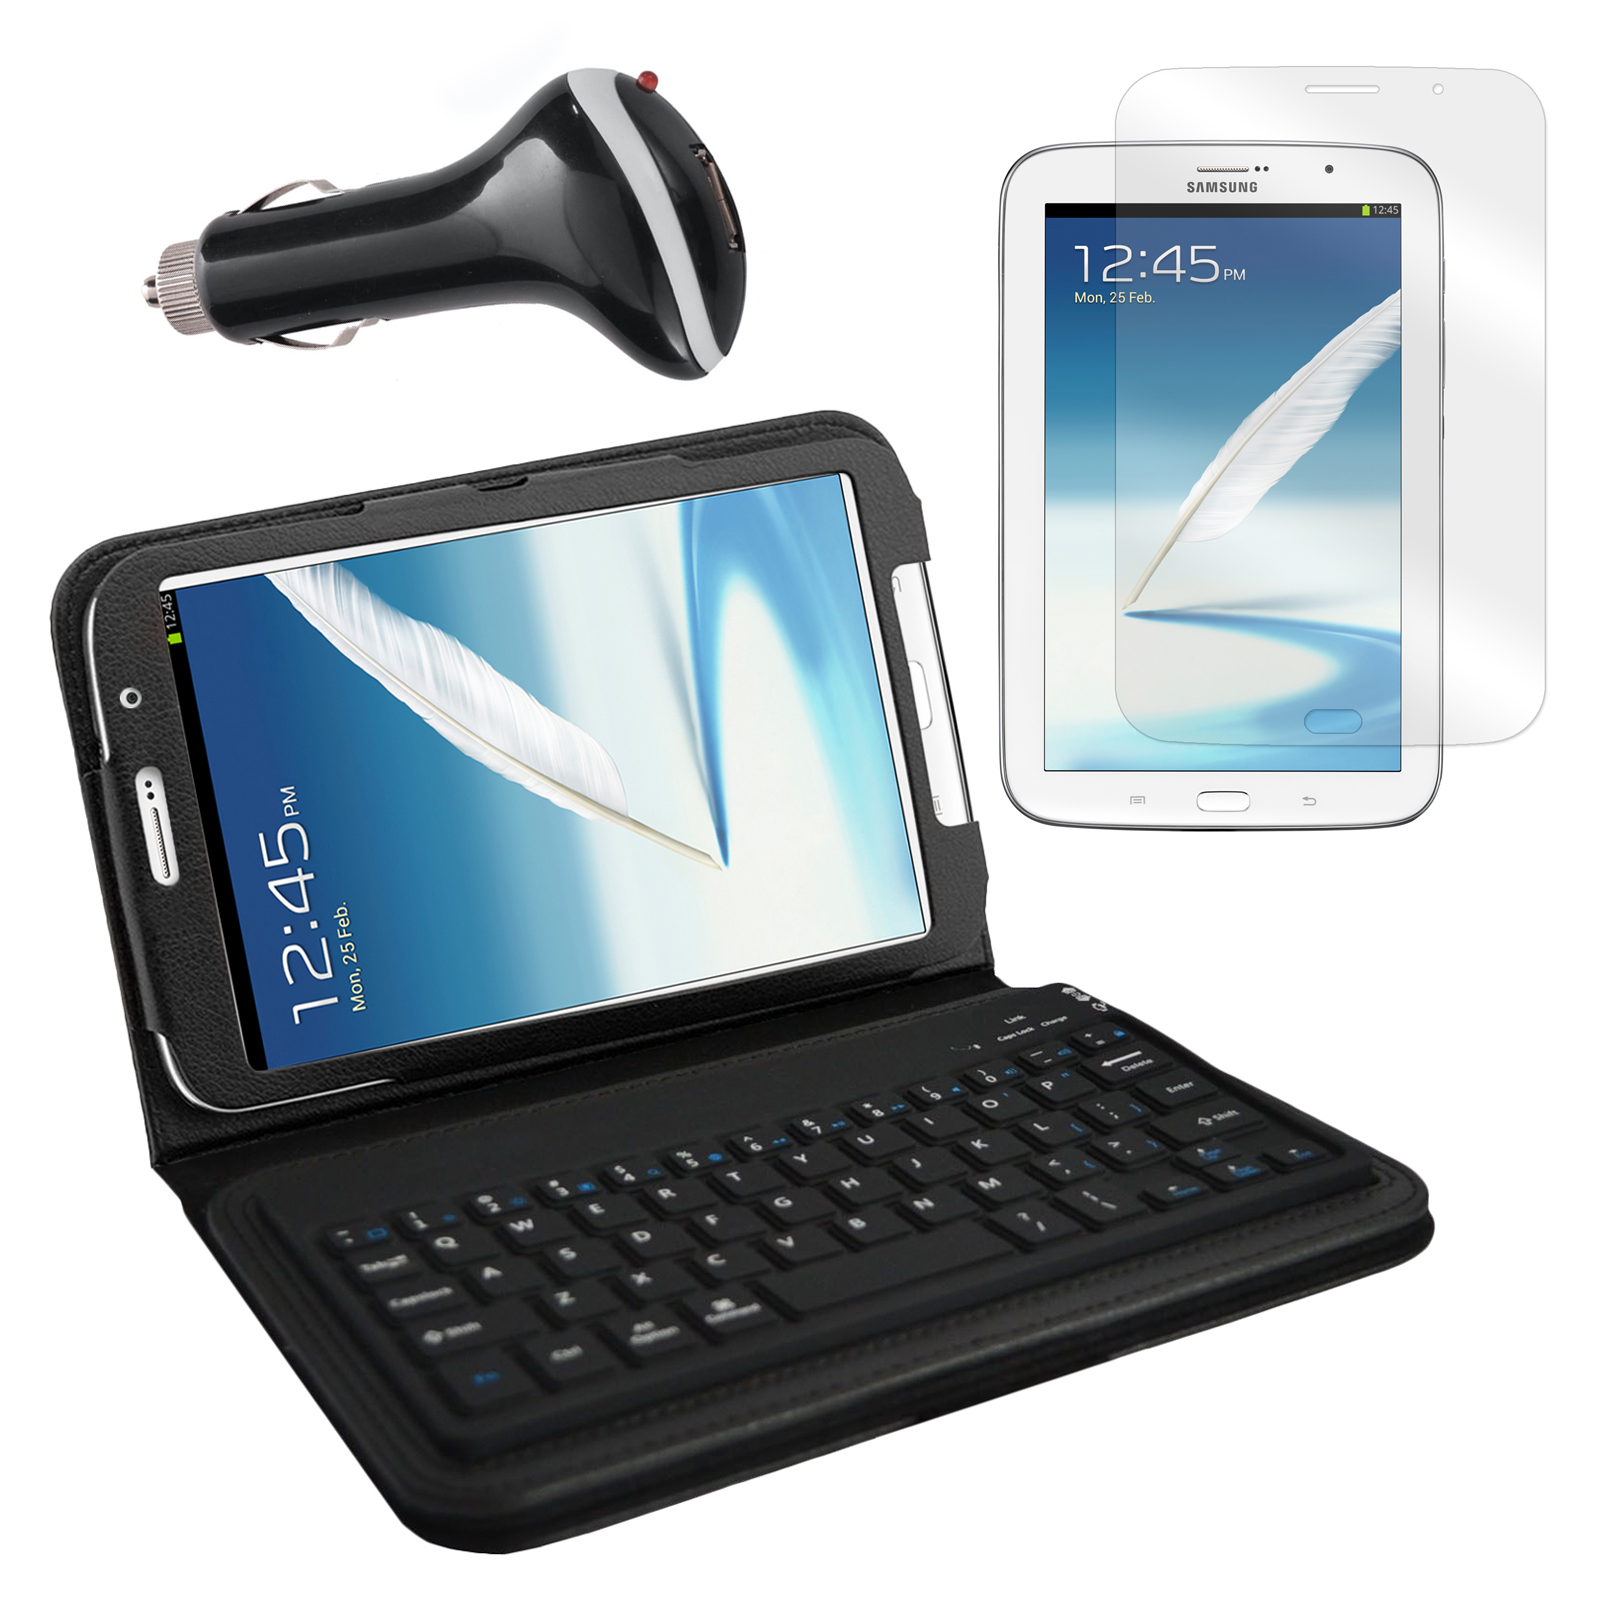 "Bluetooth Keyboard Folio with Screen Protector and Car Charger for Samsung Galaxy Note 8"" Tablet"